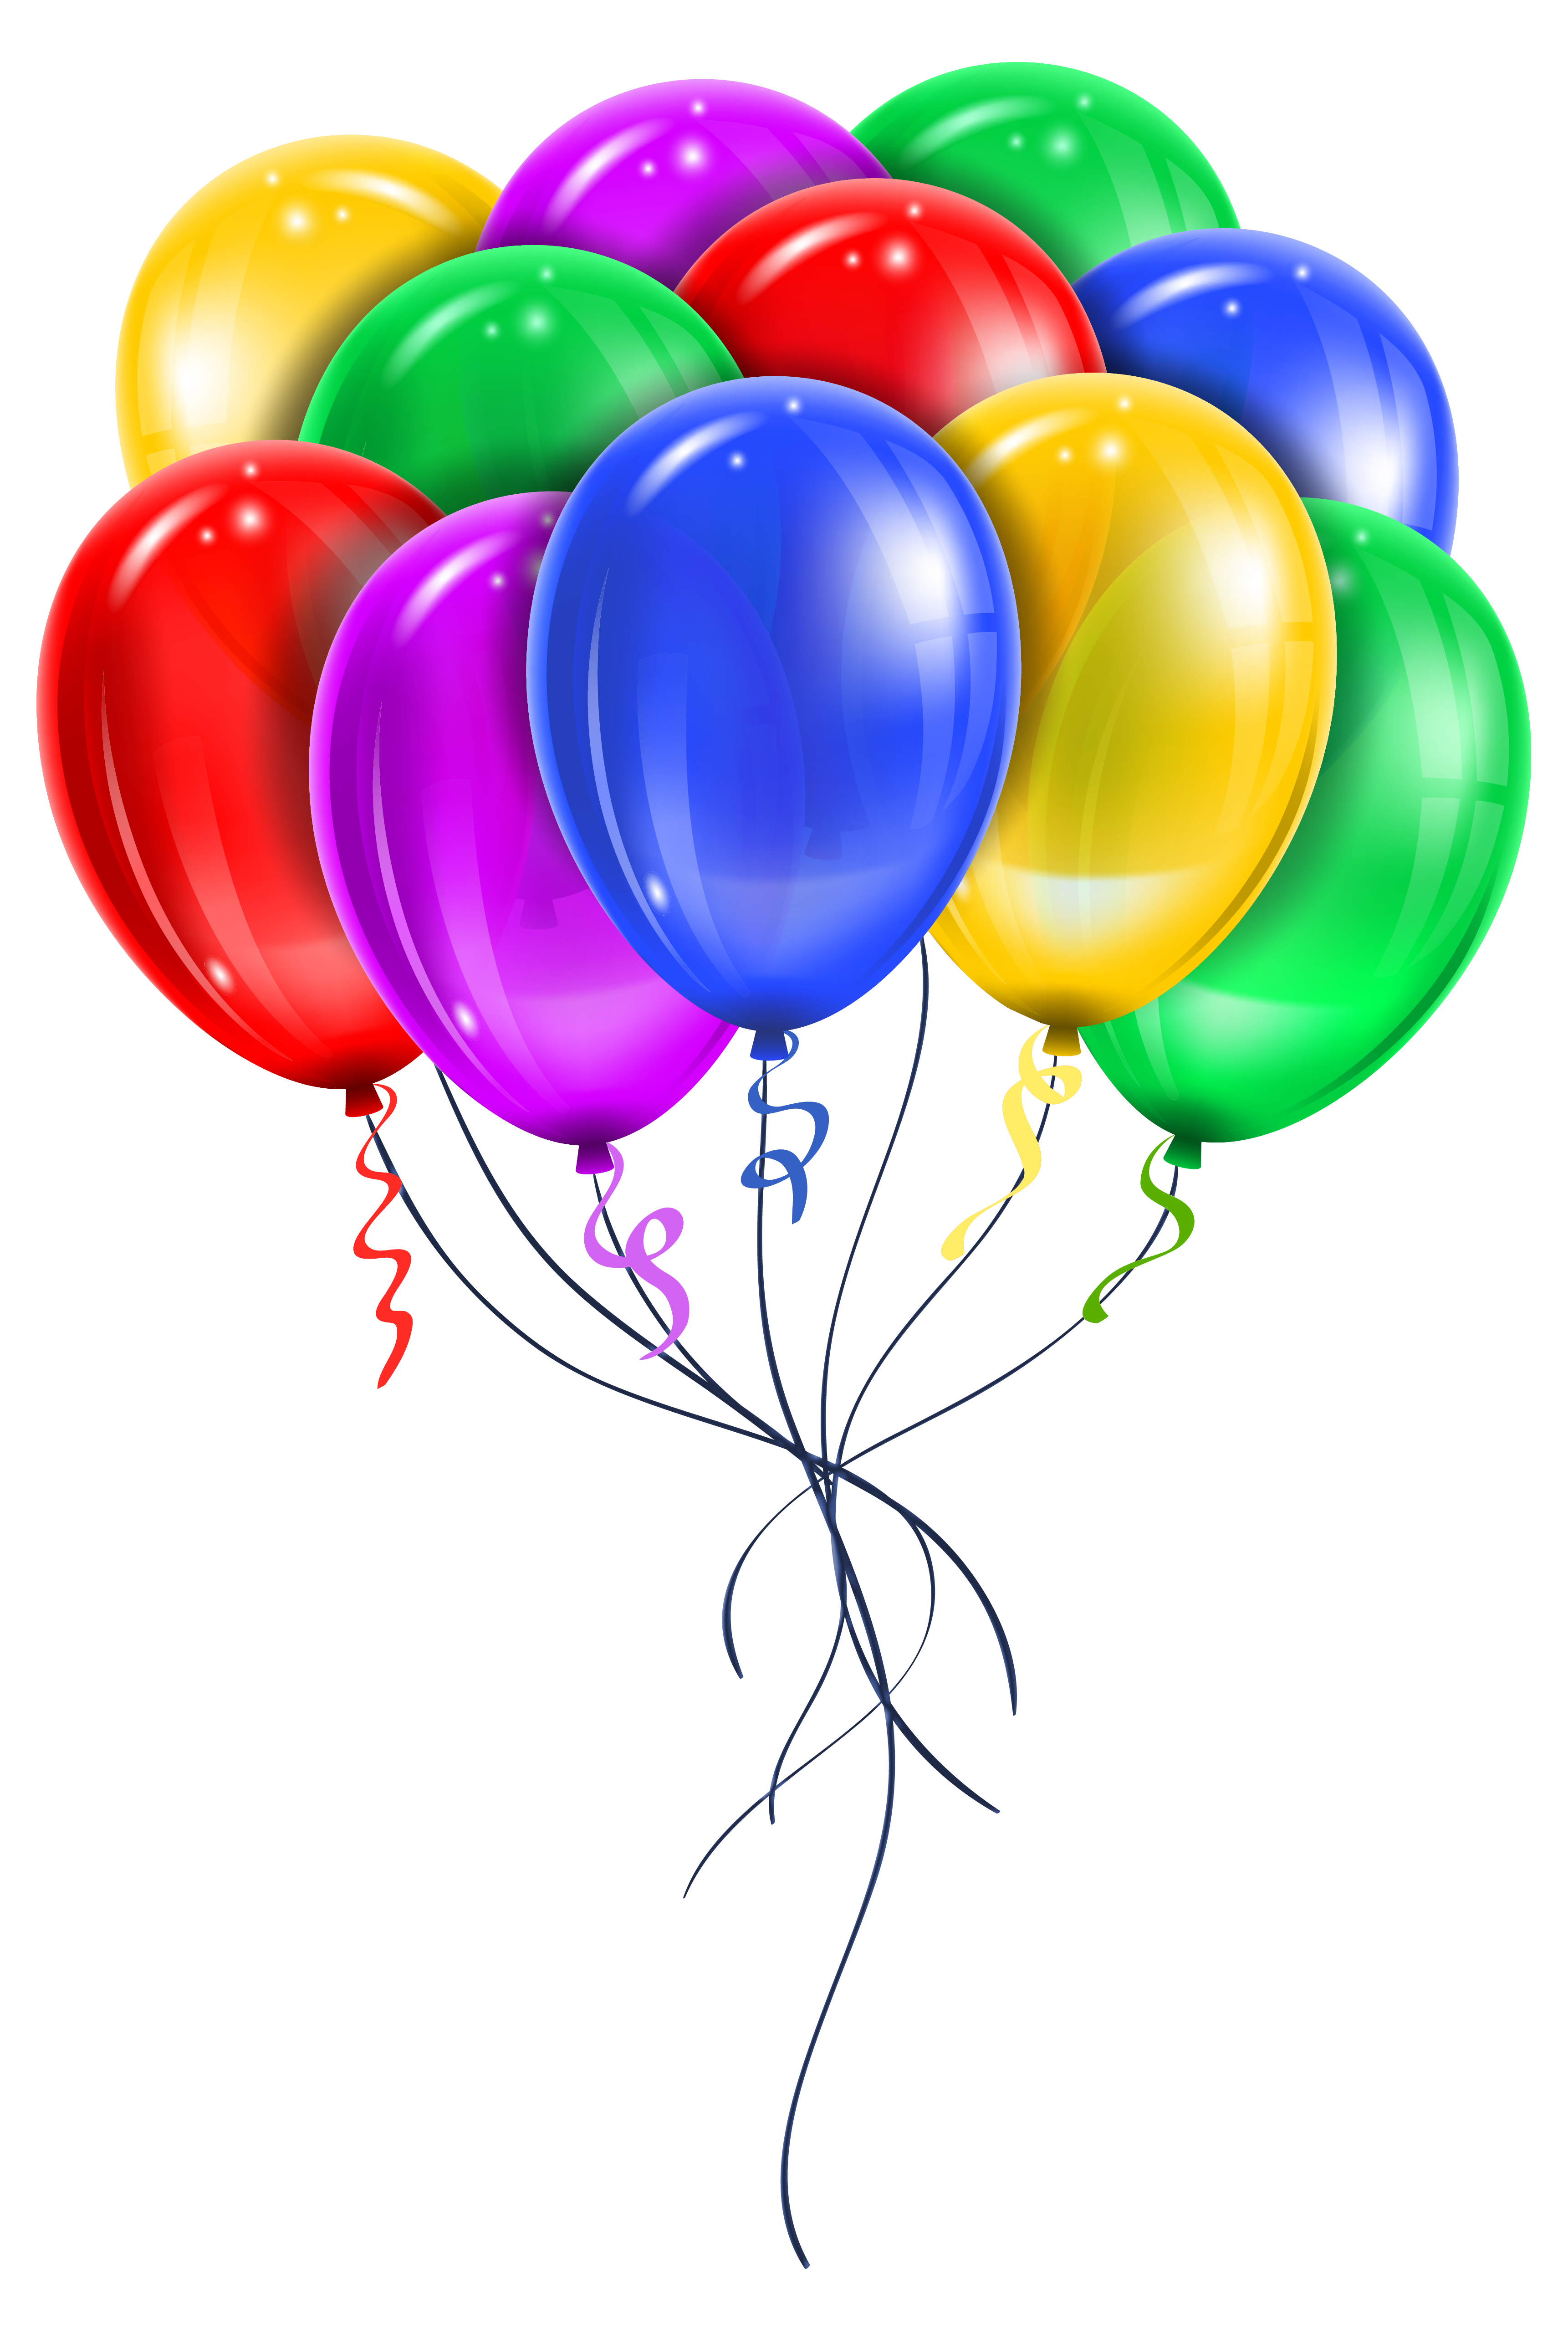 Balloon png images balloon transparent clipart free - Happy birthday balloon images hd ...